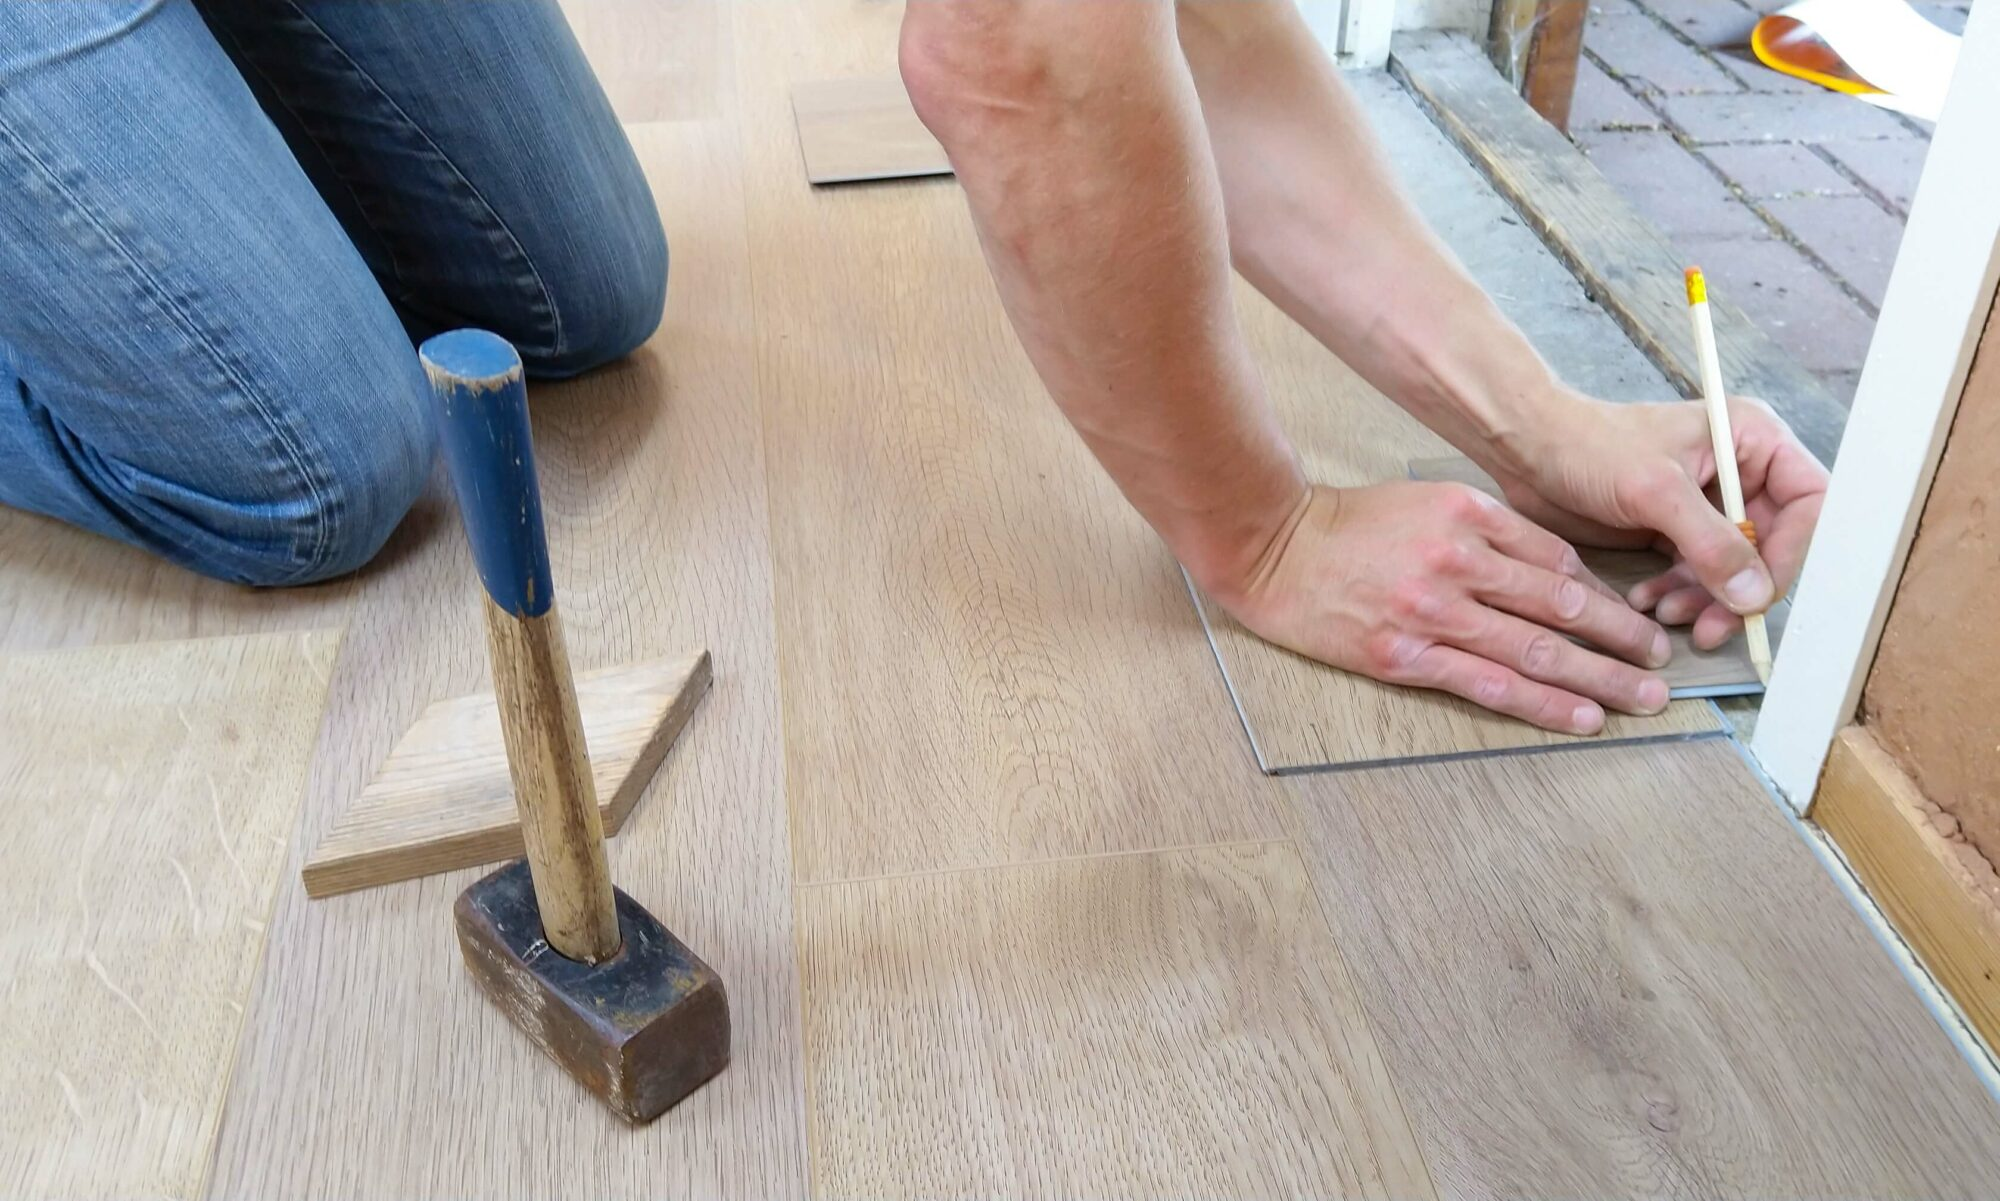 Stock image of man replacing flooring.